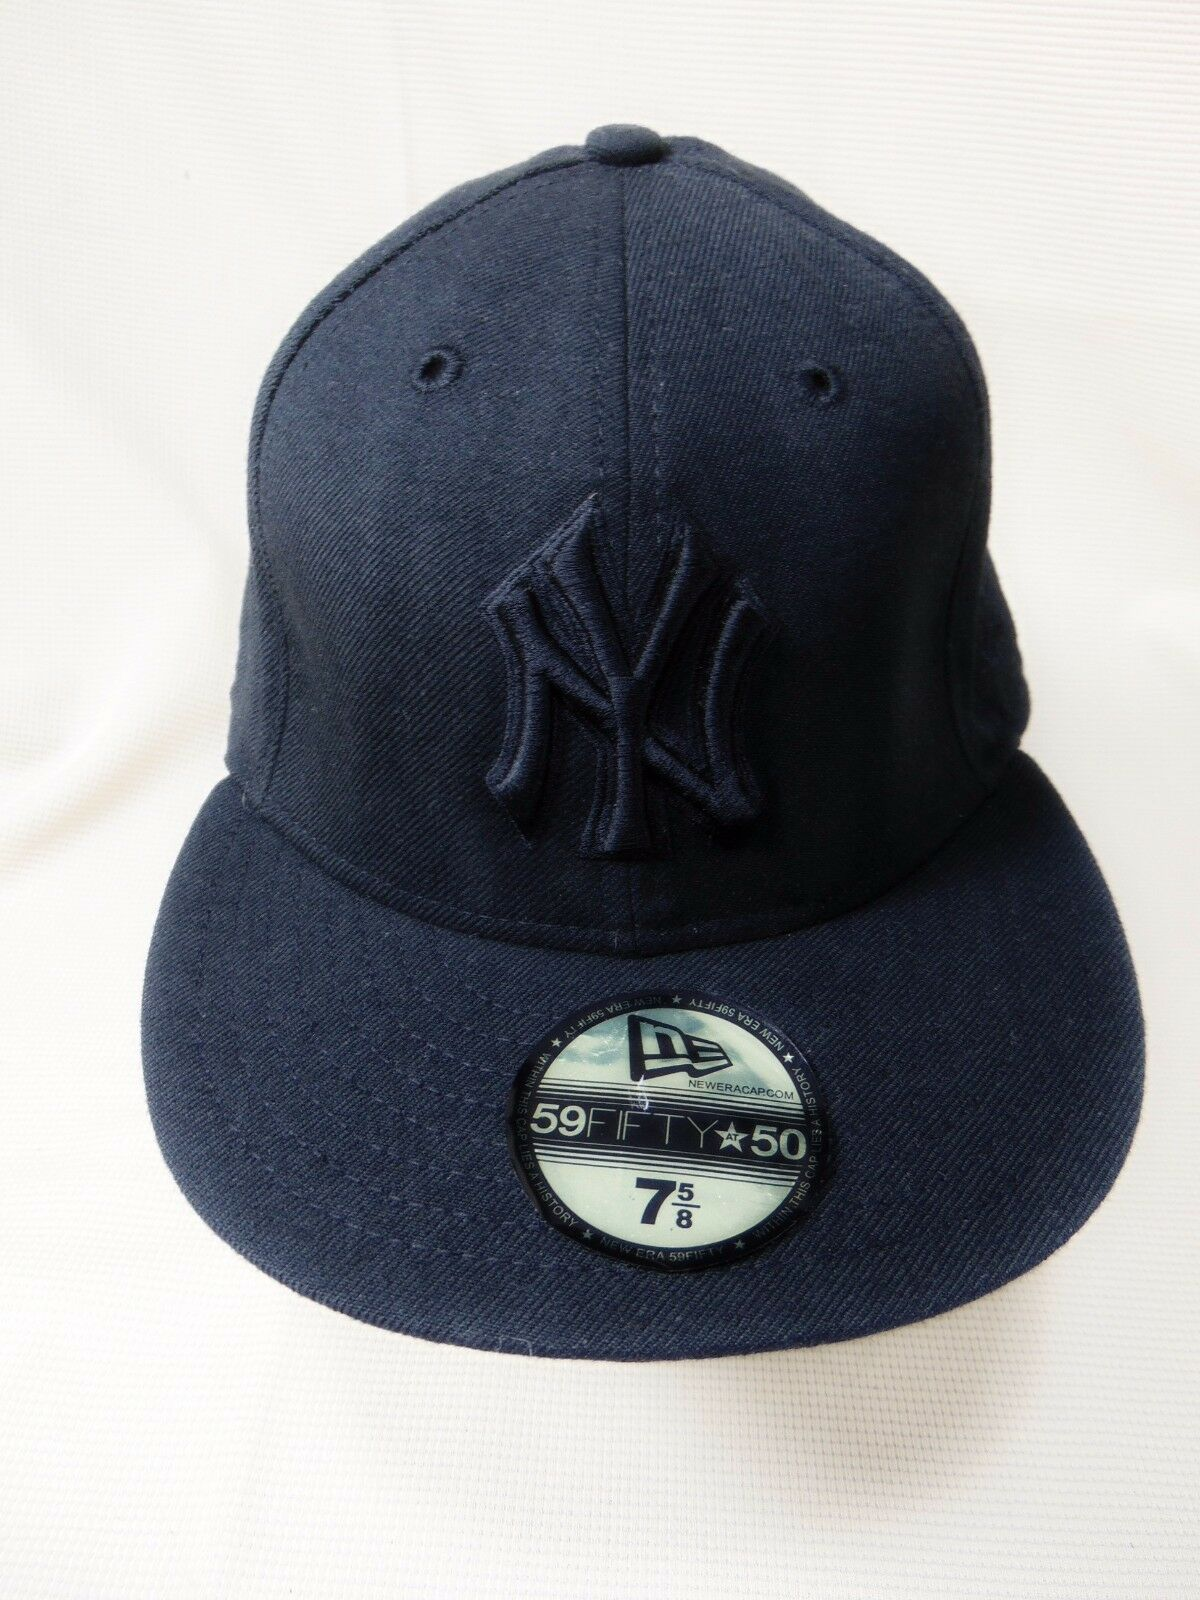 NEW ERA 59FIFTY New York Yankees NY Adult Fitted Hat Cap 7 5/8 Black MLB USA